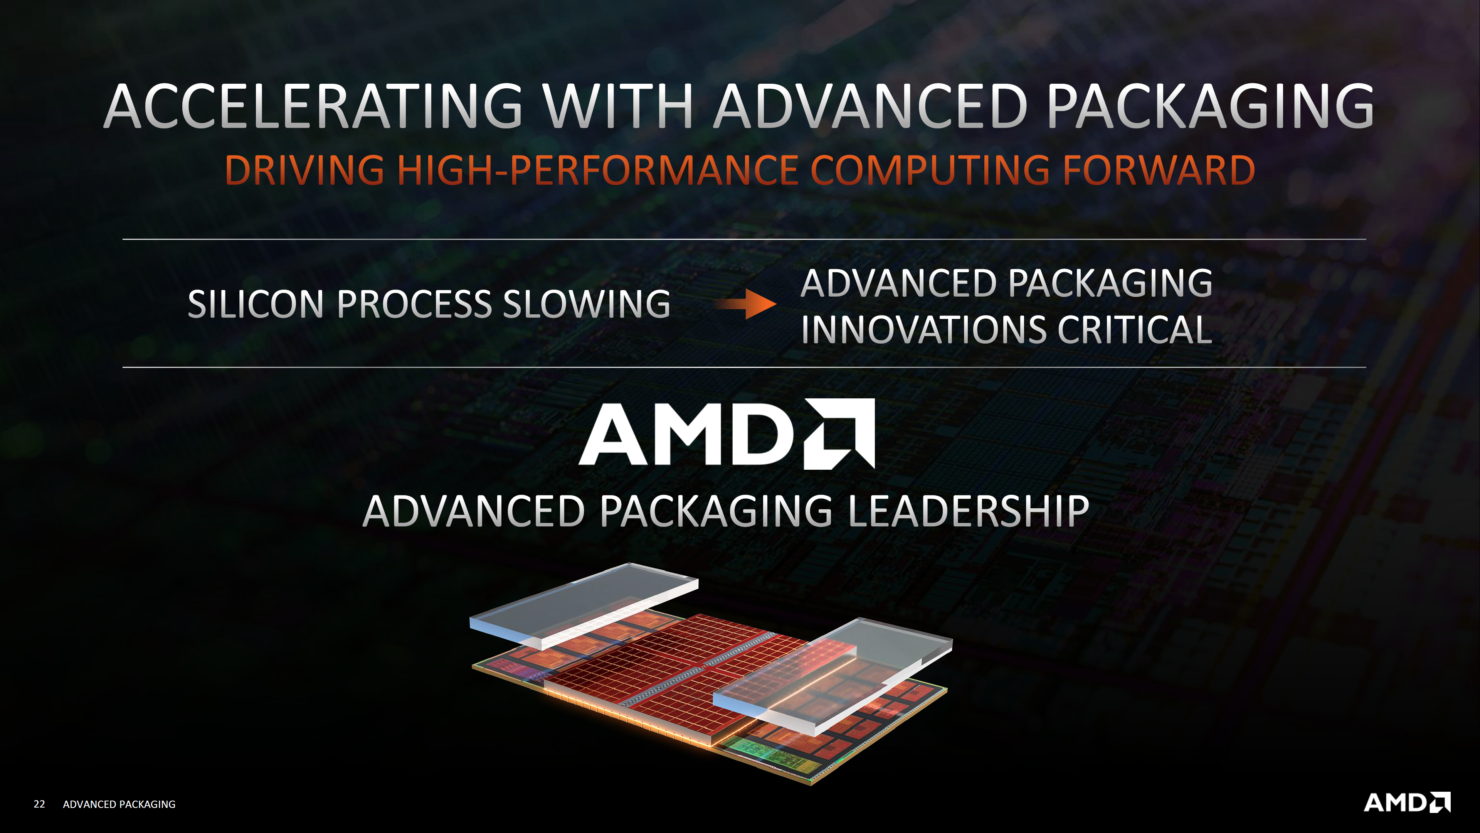 amd-advanced-3d-chiplet-packaging-3d-stacking-technologies-3d-v-cache-_21